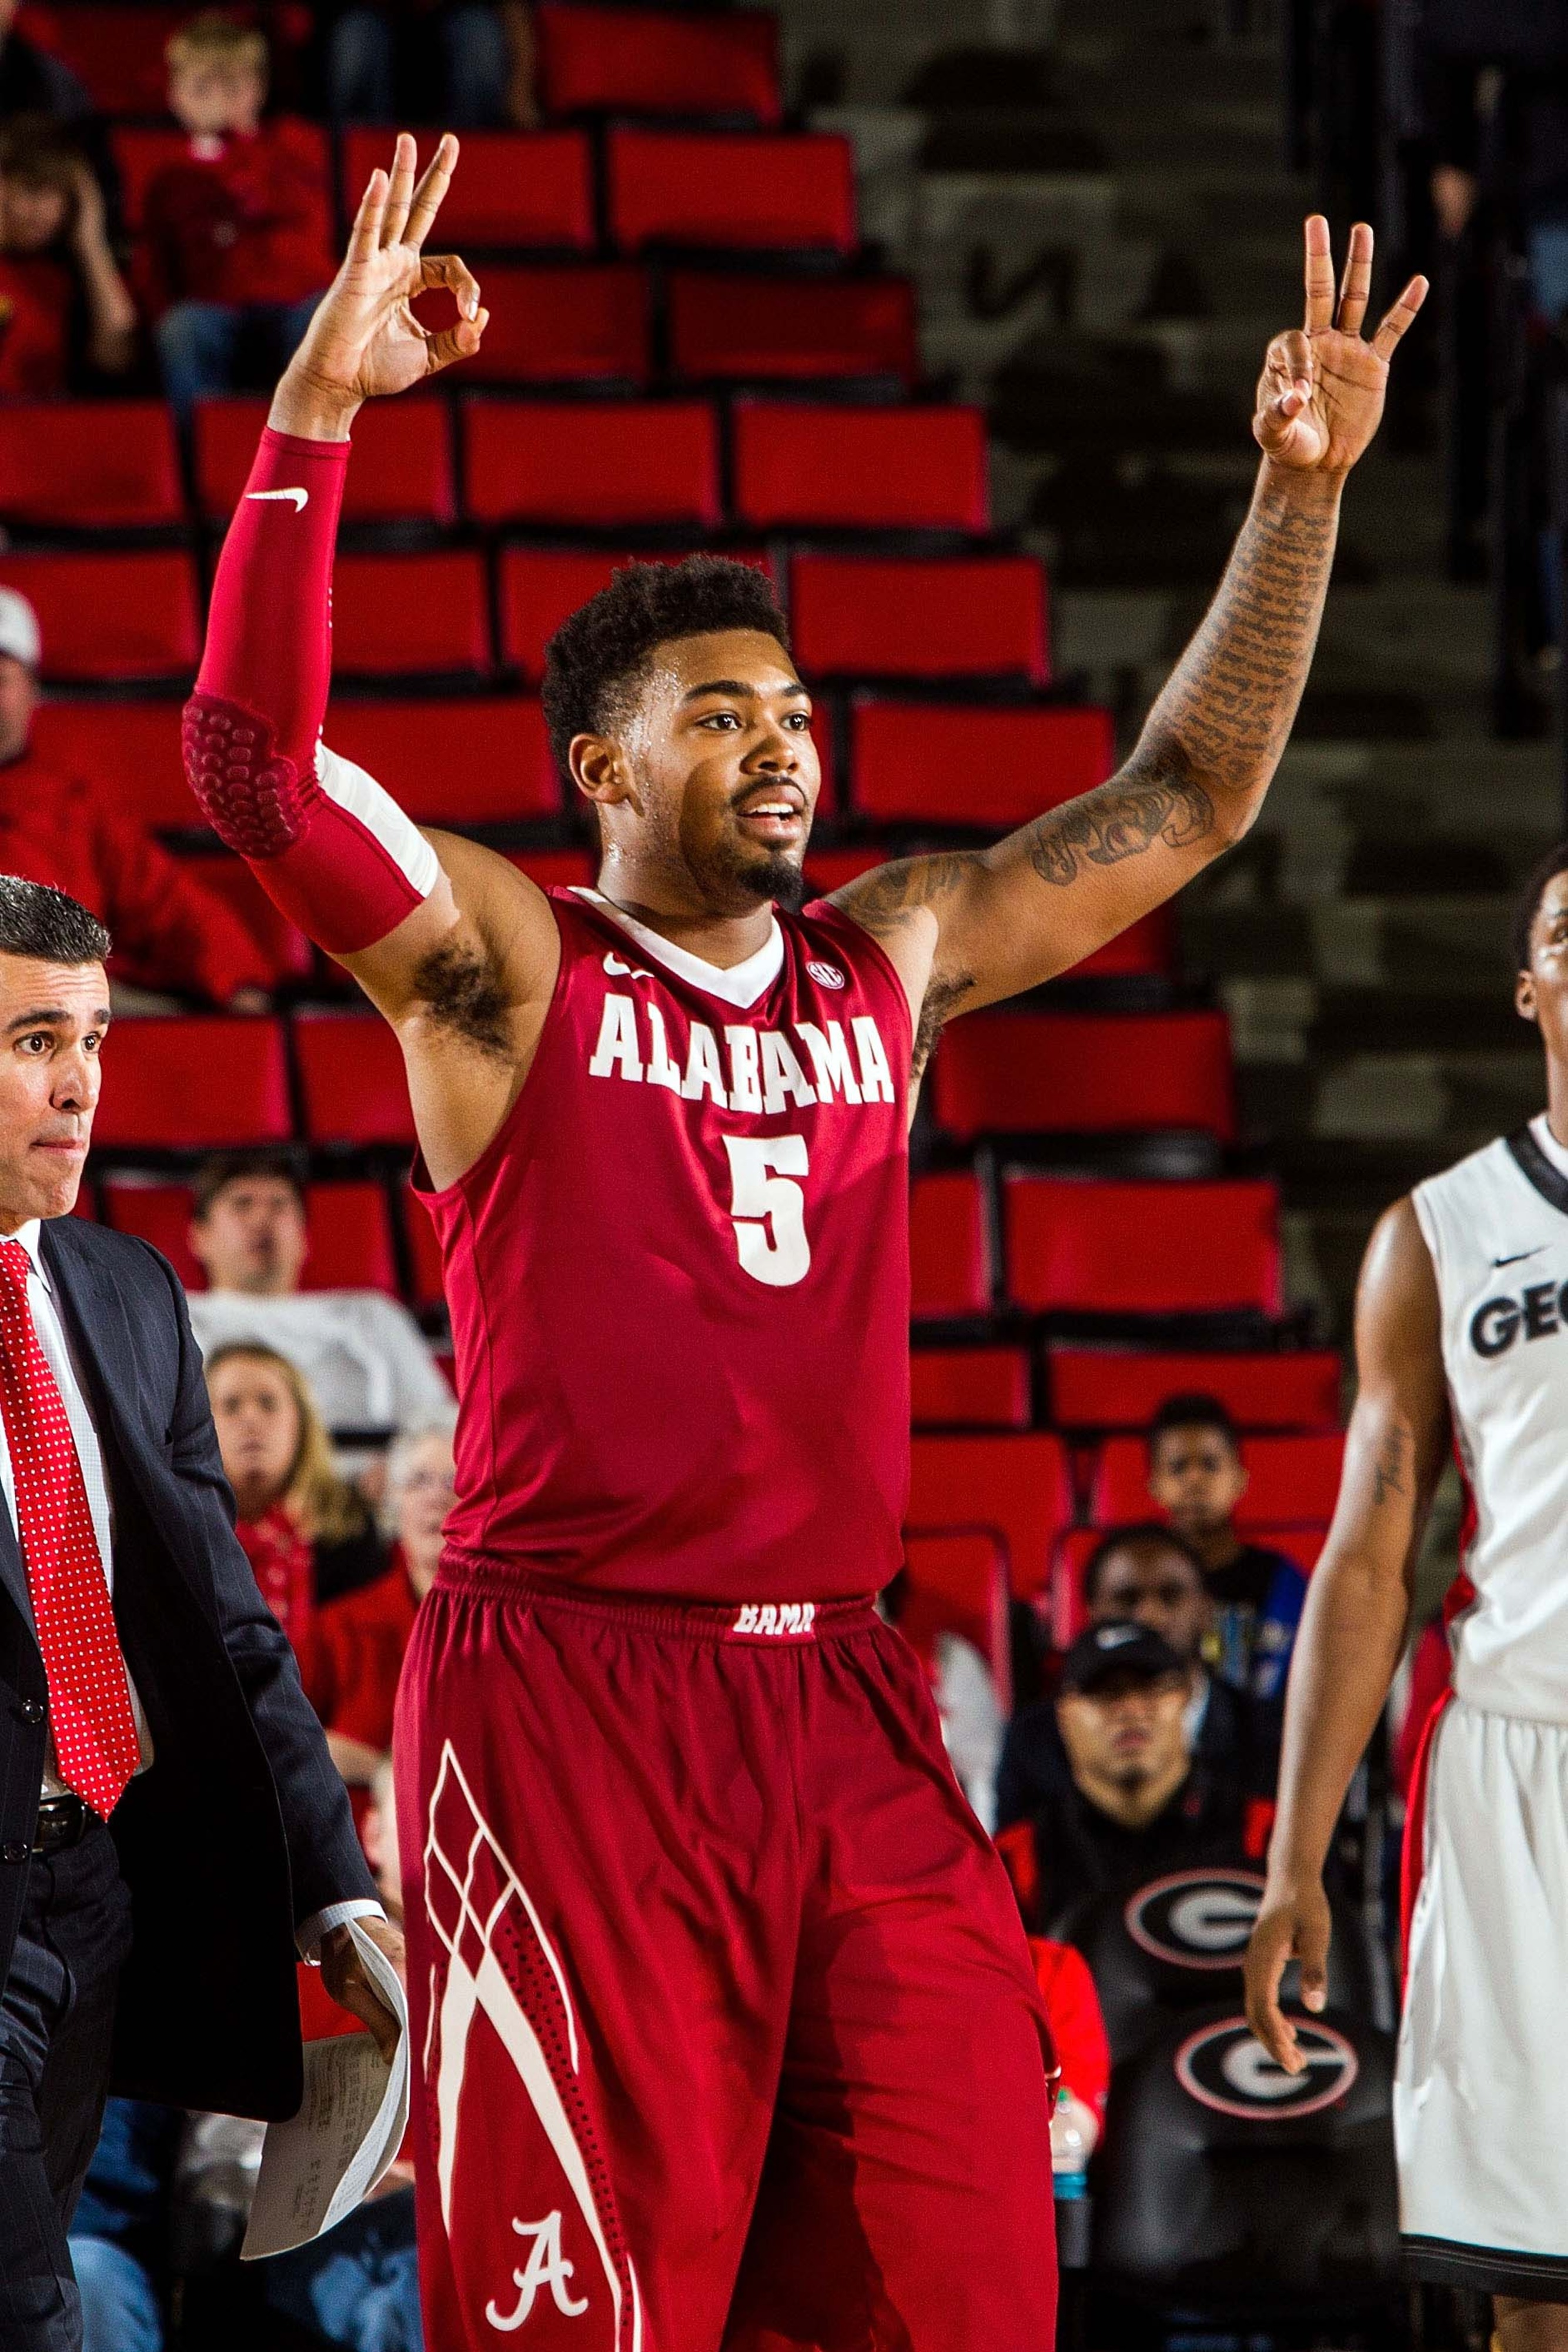 Trevor Lacey led Alabama in 3-pointers made and assists last season.